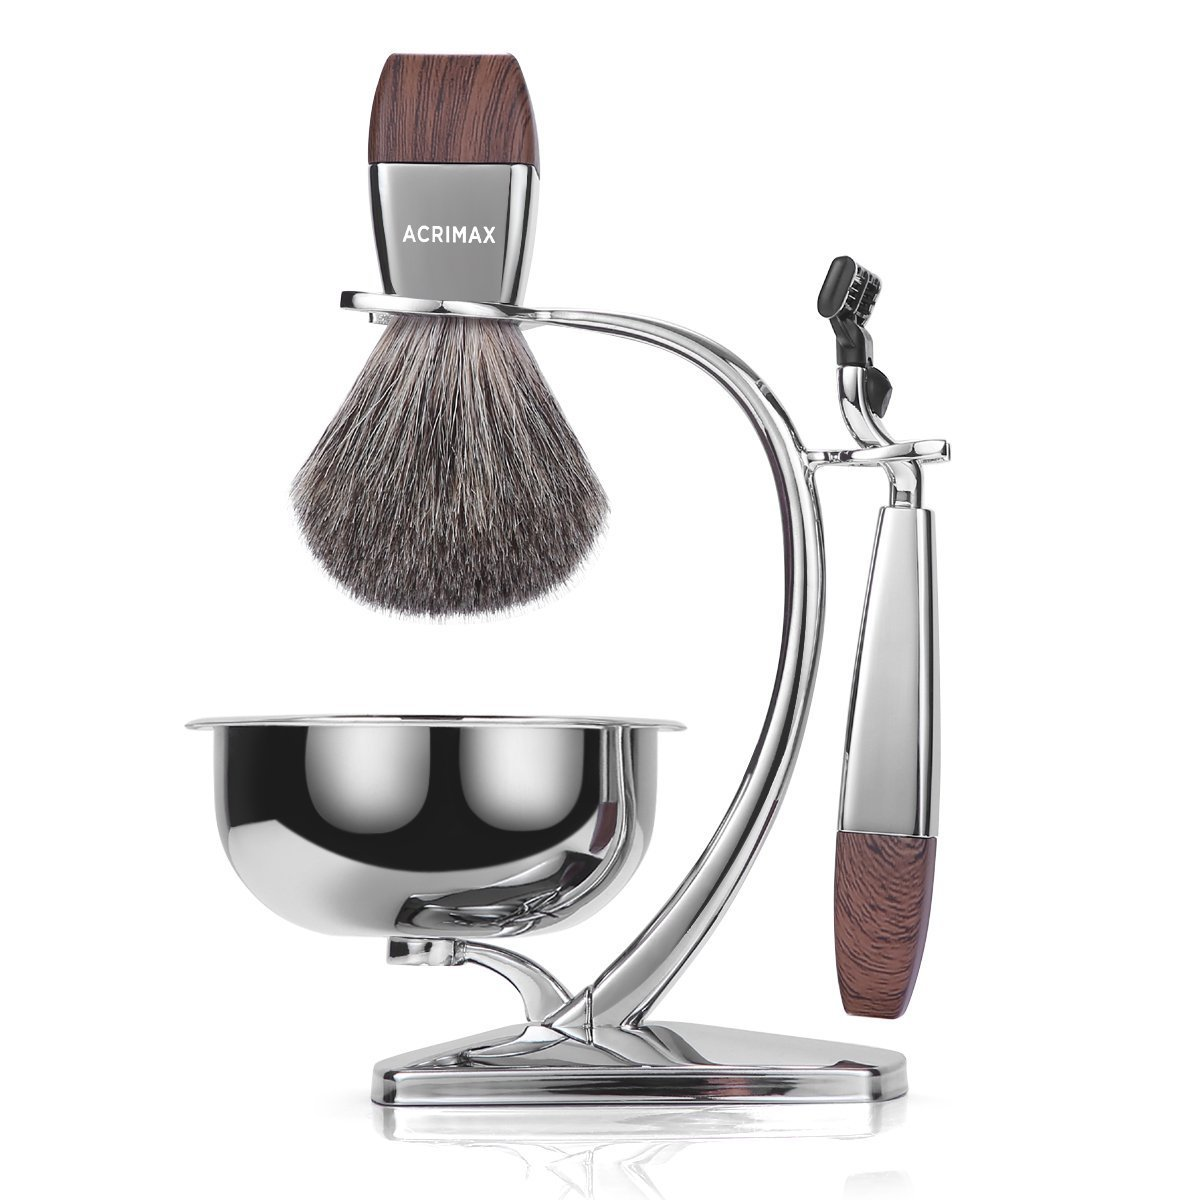 ACRIMAX Premium Badger Hair Shaving Brush Set with Luxury Brush Stand and Brush holder for Soap Bowl and Manual MACH3 Razor Gift Kits for Men (MACH3) by ACRIMAX